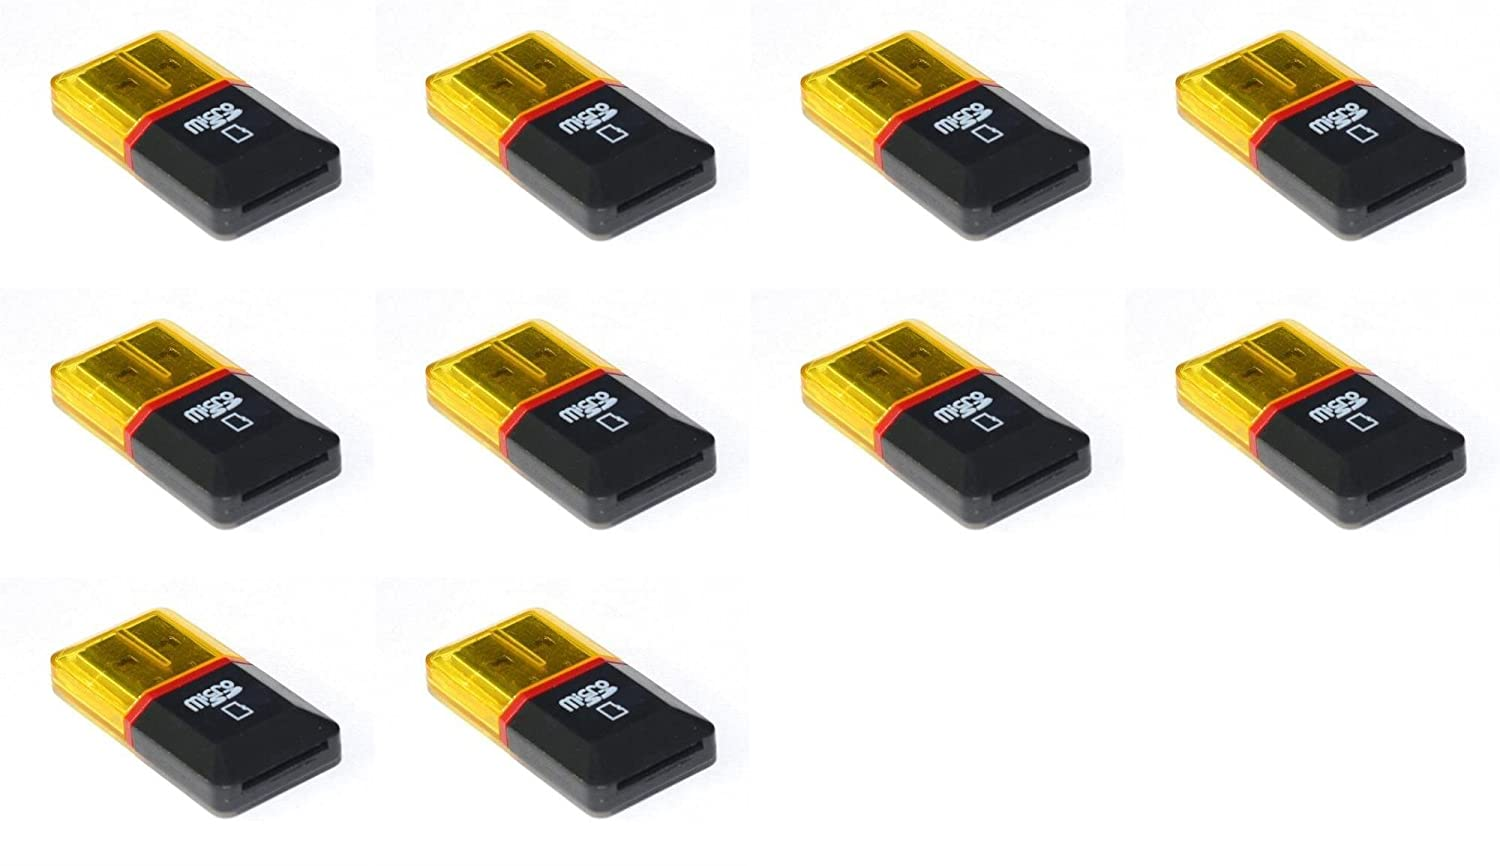 10 x Quantity of Blackberry U890 Micro SD Card Reader Up to 32GB - FAST FROM Orlando, Florida USA!